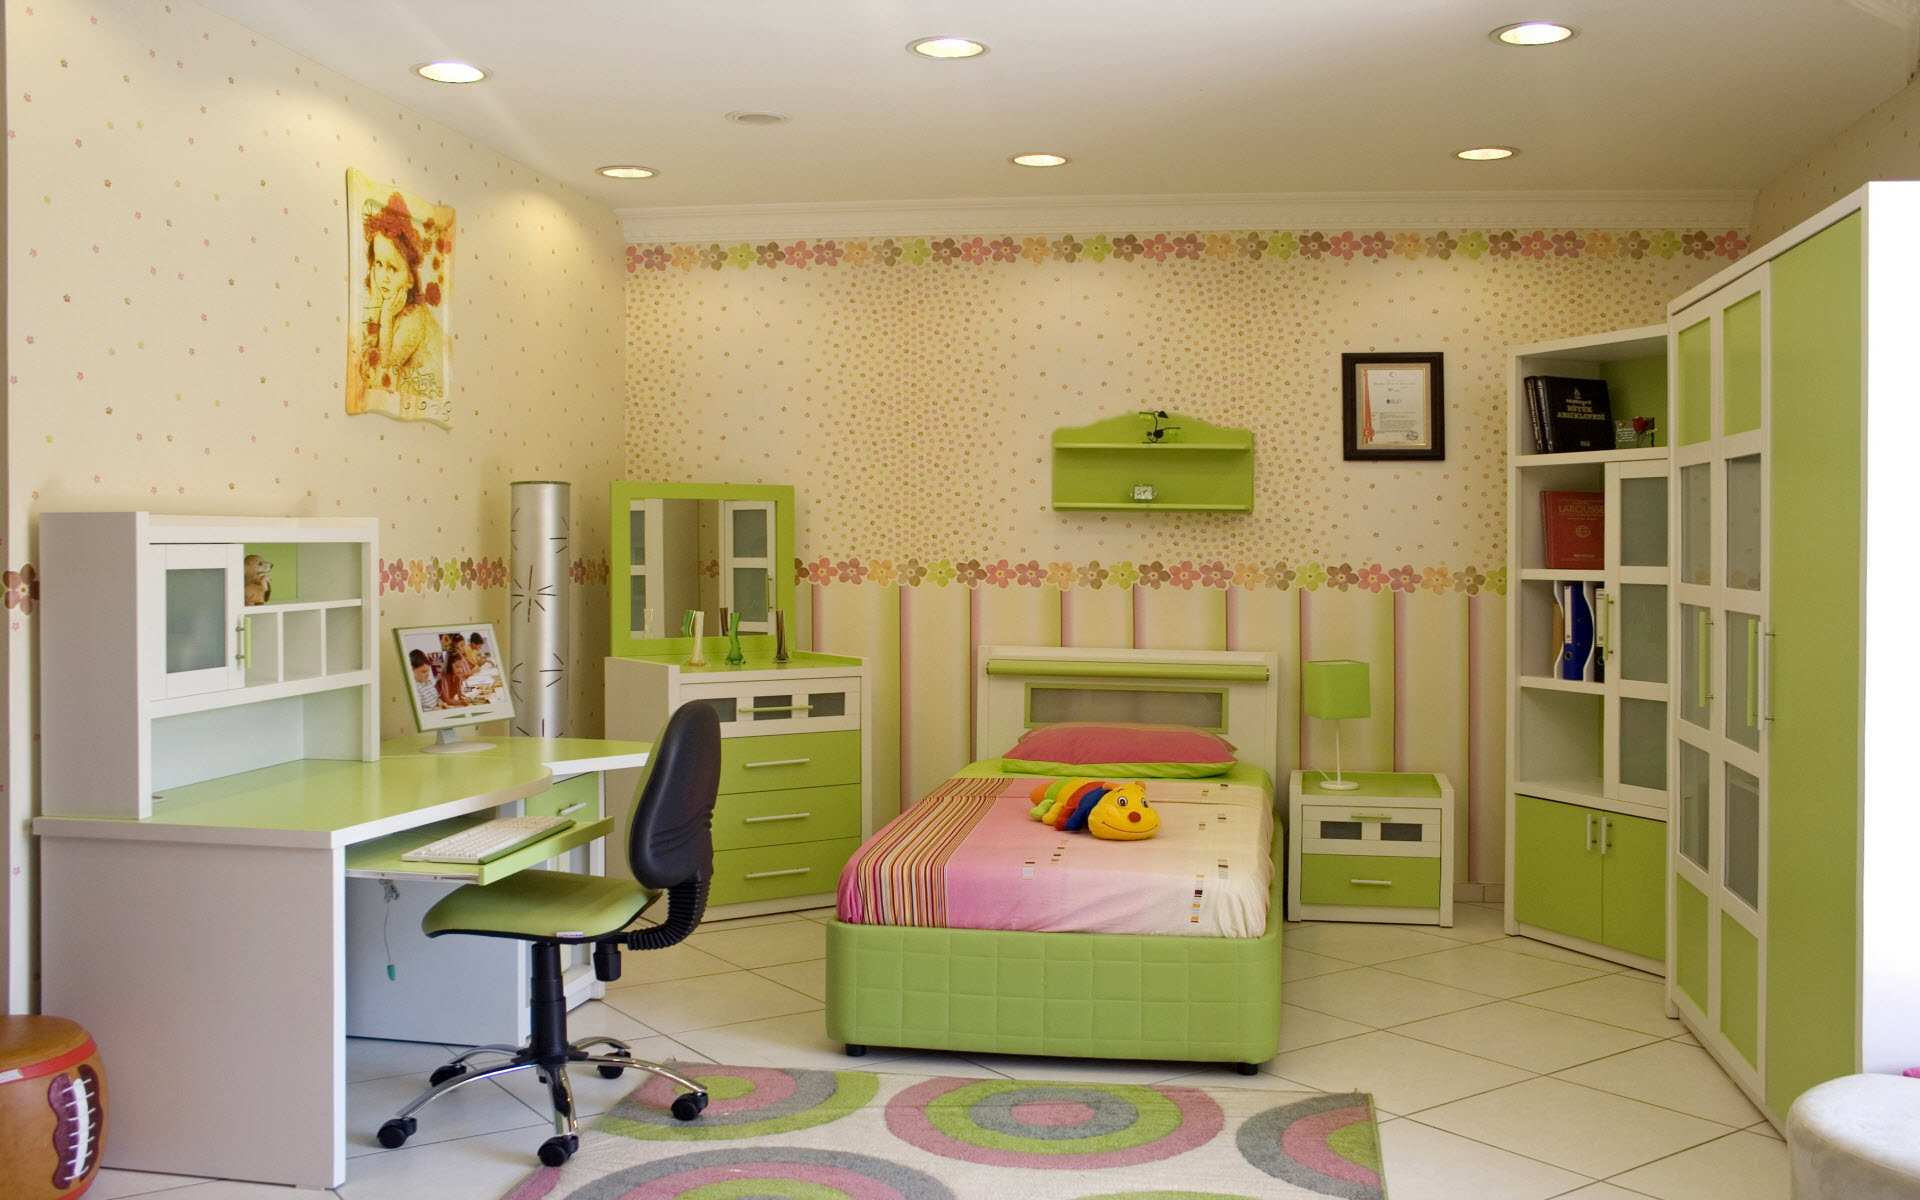 Kids room design apartments i like blog - Kids room image ...